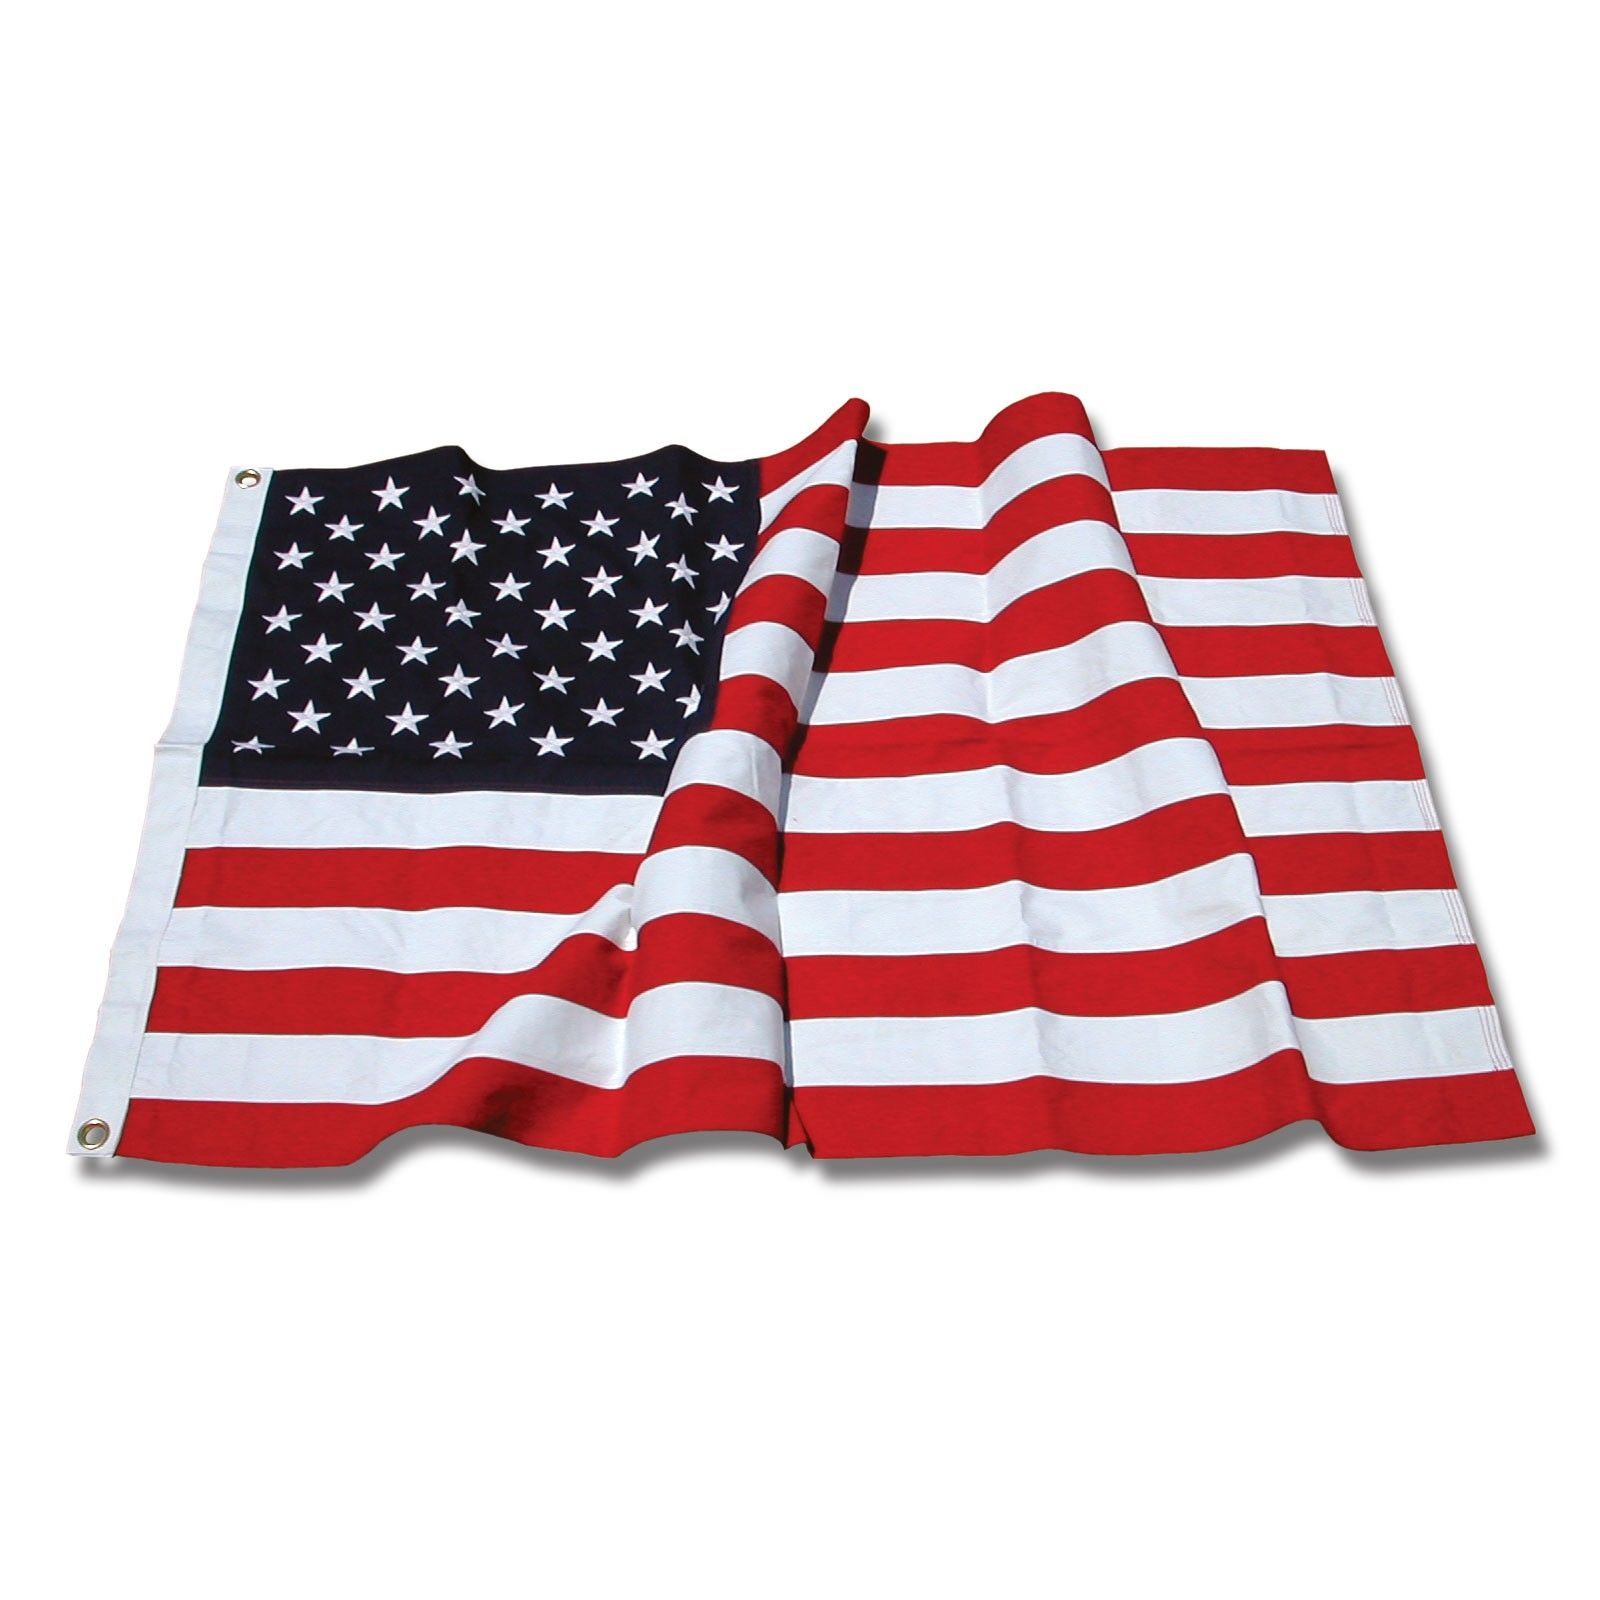 American Flag 3ft X 5ft Sewn Cotton Online Stores Inc Brand Flag Store Cotton Flag Flag Display Case